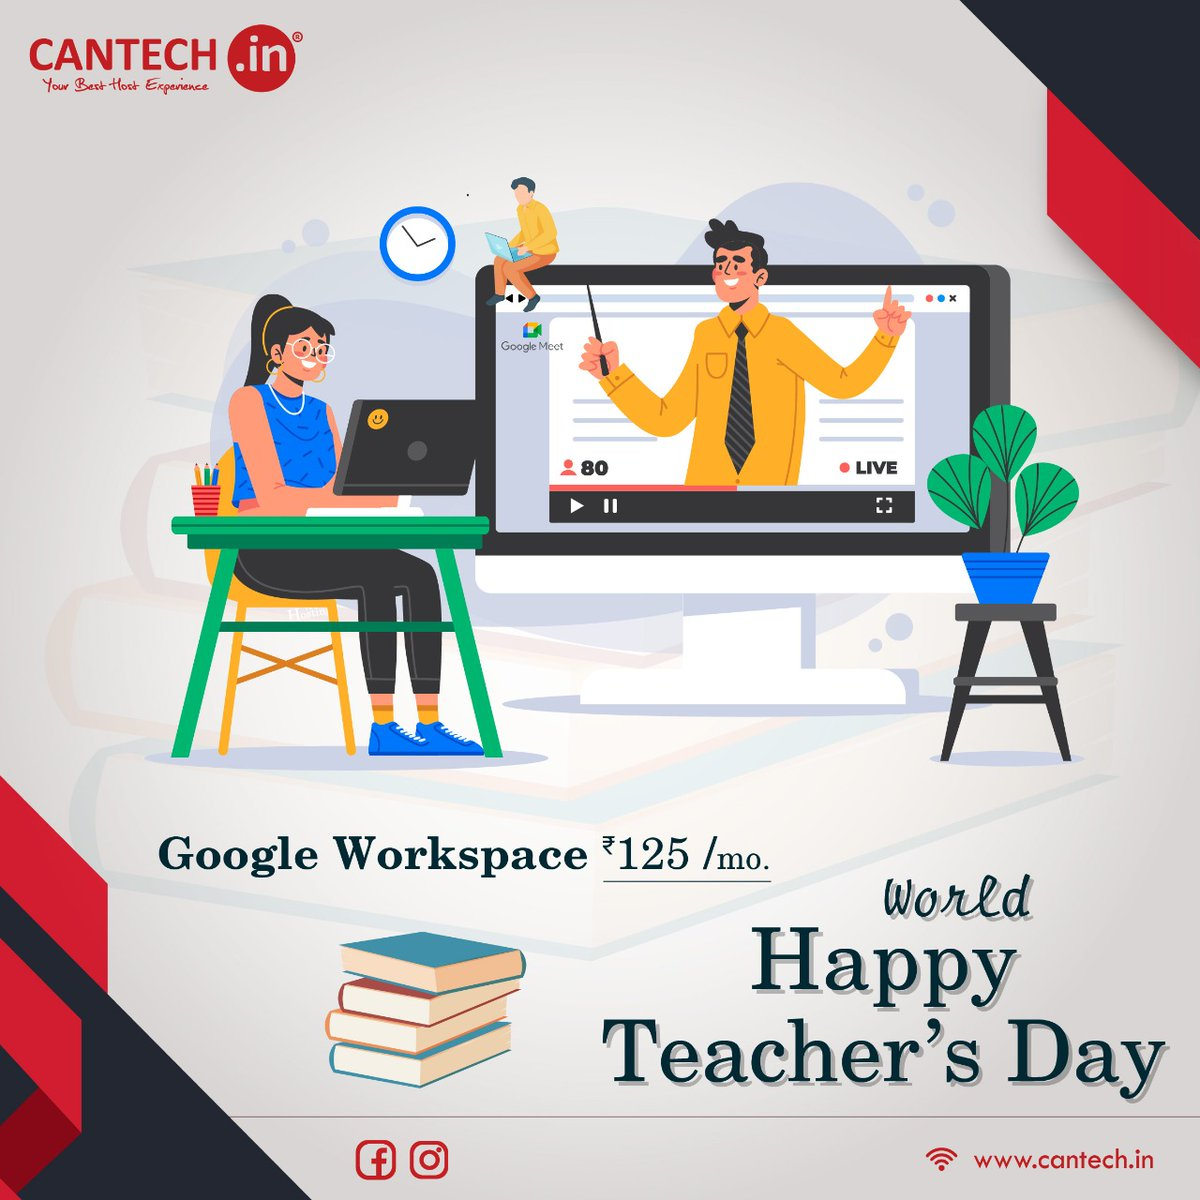 test Twitter Media - Happy #TeachersDay to all super heros who exponentially helped during pendamic times and adopt new technology and continued their work for the future of the nation. We salute all Teachers 🙏 https://t.co/drycOr8RSV